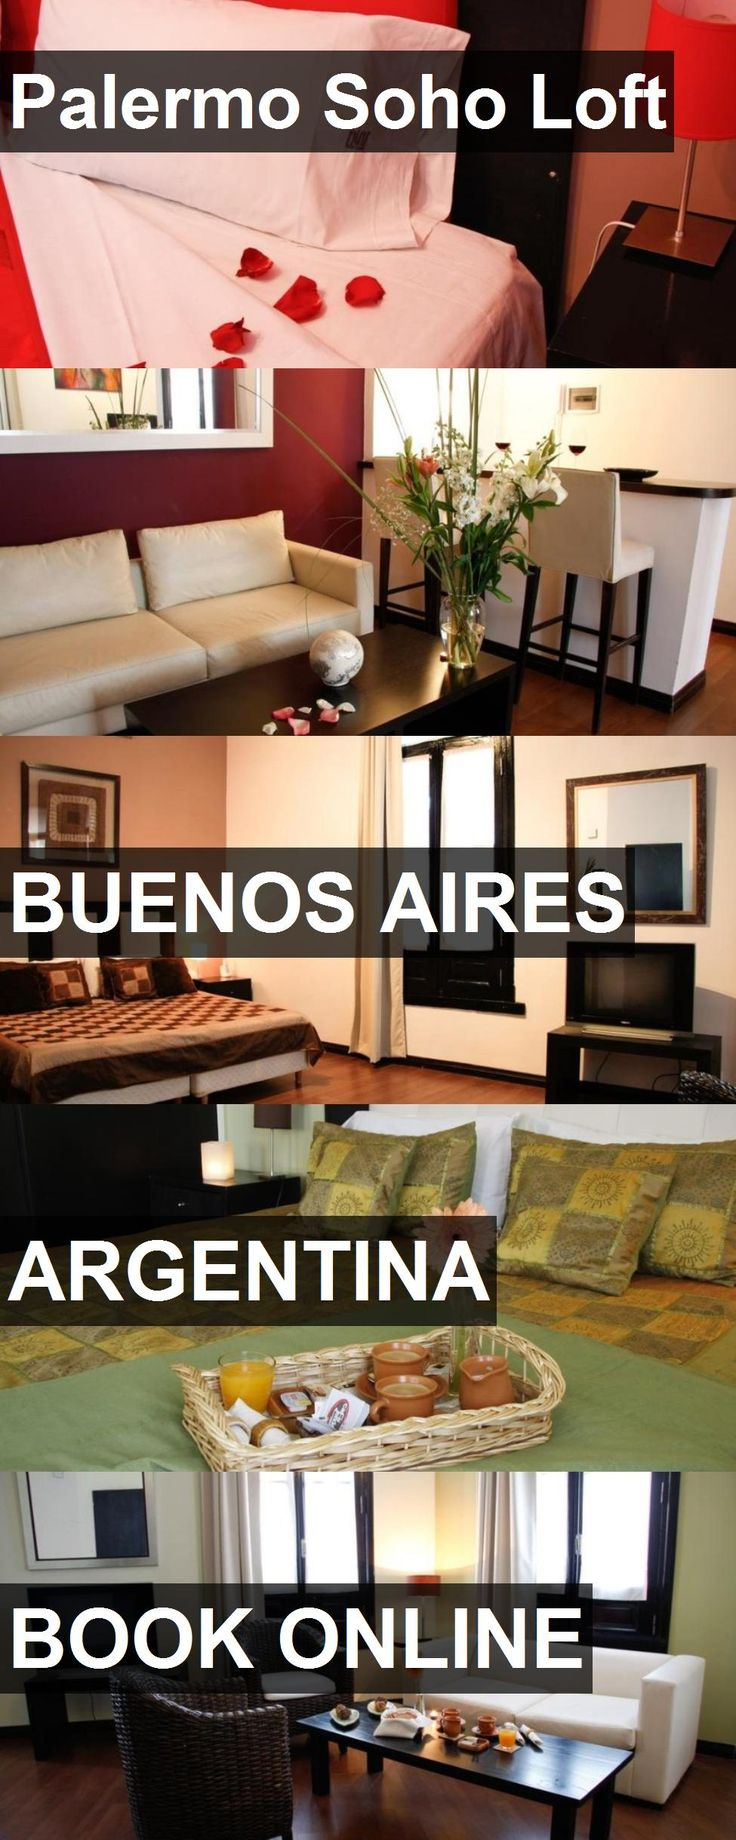 Hotel Palermo Soho Loft in Buenos Aires, Argentina. For more information, photos, reviews and best prices please follow the link. #Argentina #BuenosAires #travel #vacation #hotel